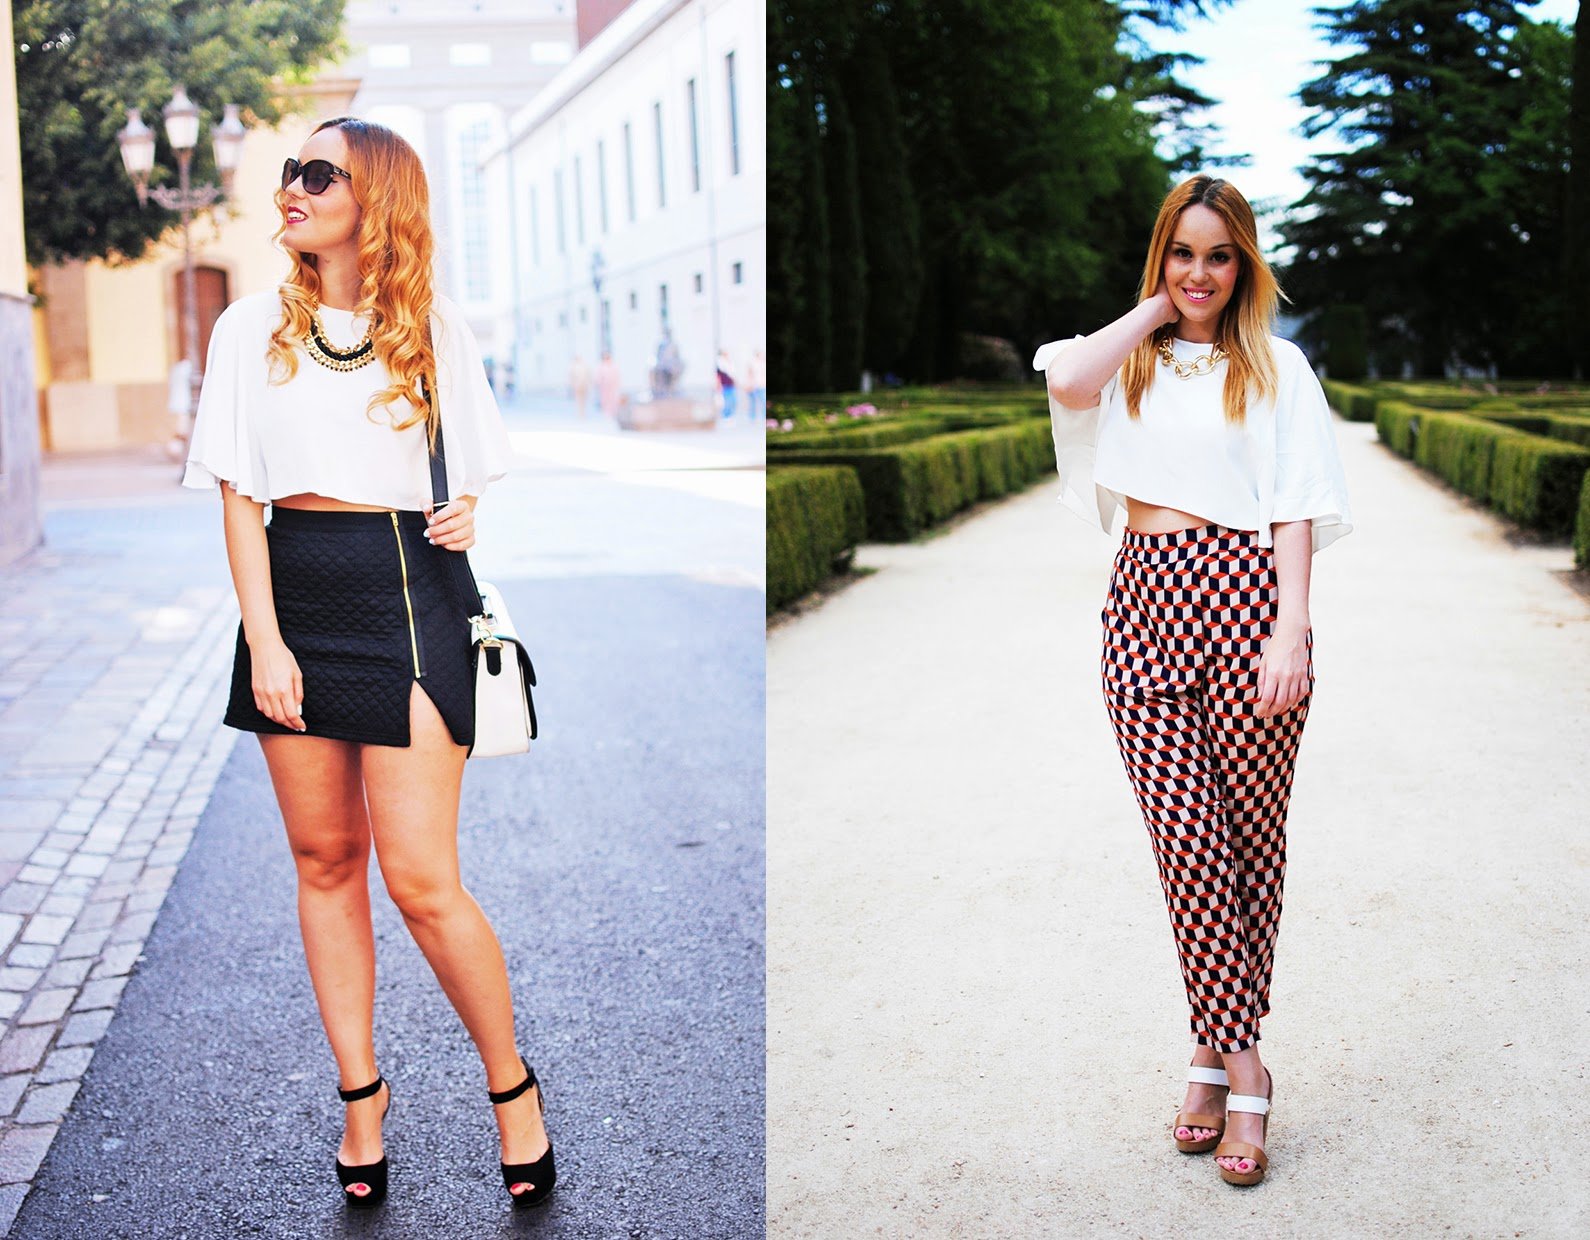 nery hdez, crop top, fashion inspiration, white top, blogueras de tenerife